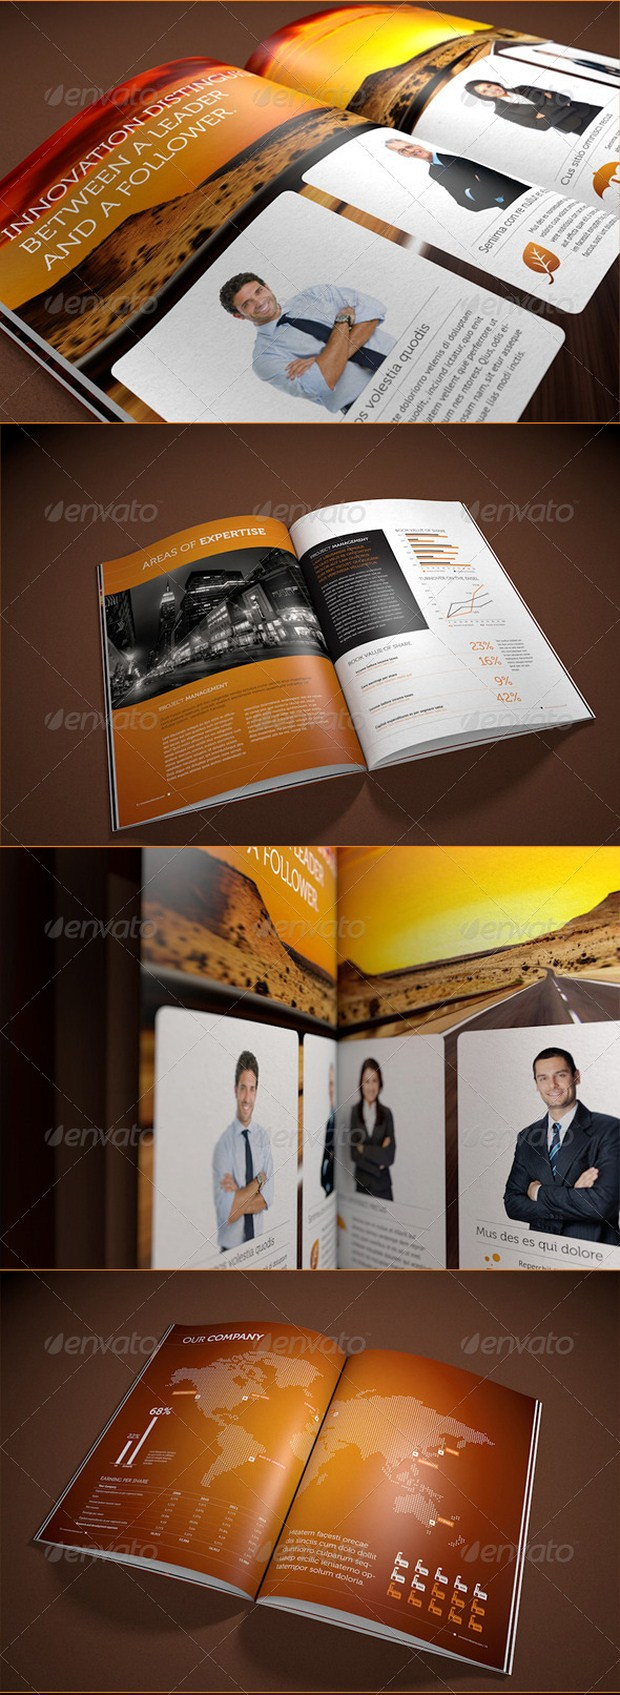 20 Awesome Brochure Designs Inspiration 41